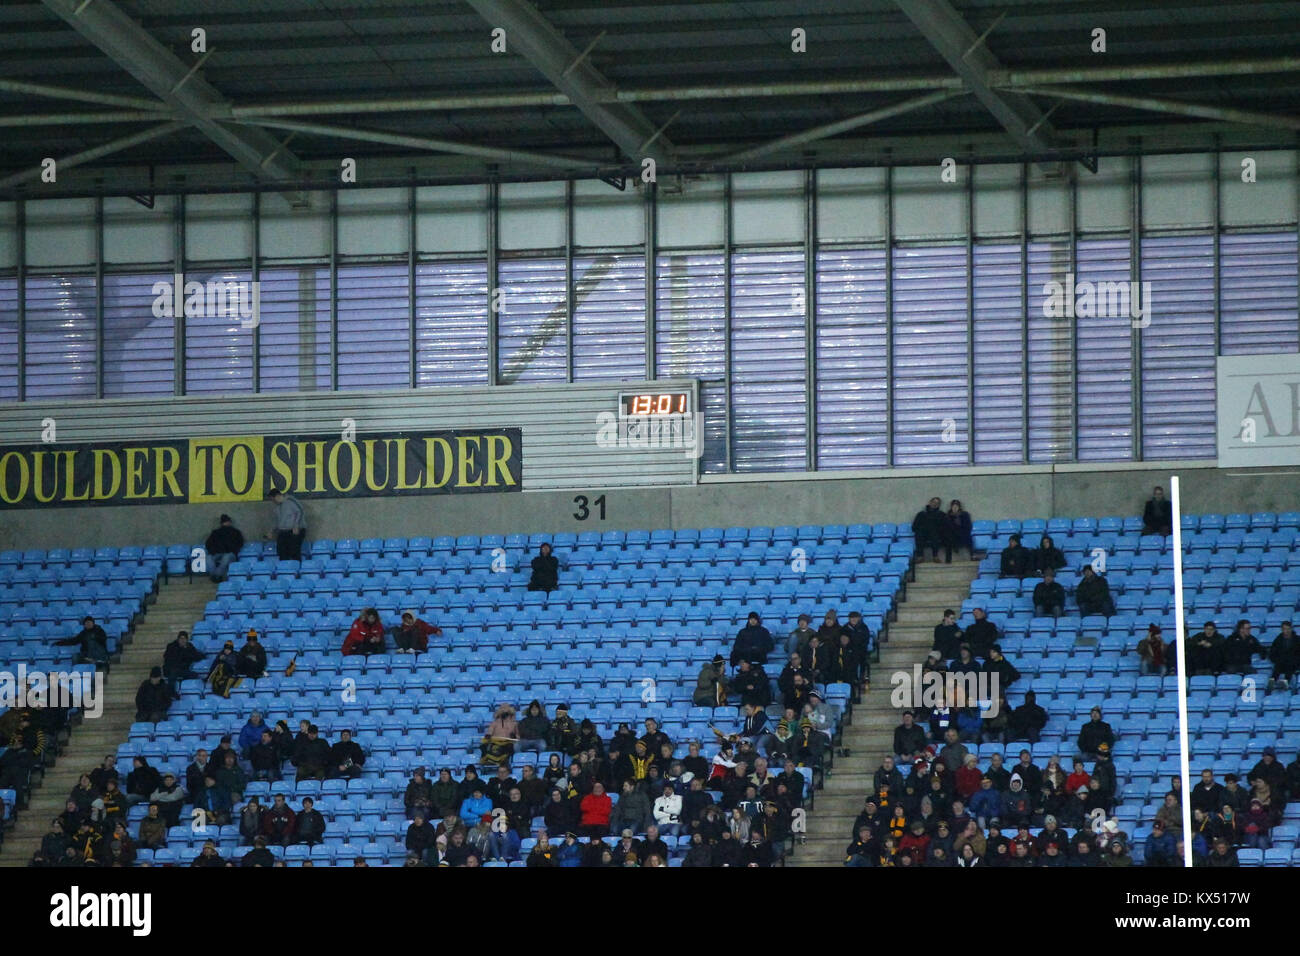 Coventry, UK. Jan, 2018. during the Aviva Premiership round13 game between Wasps and Saracens rfc at the Ricoh Arena. - Stock Image